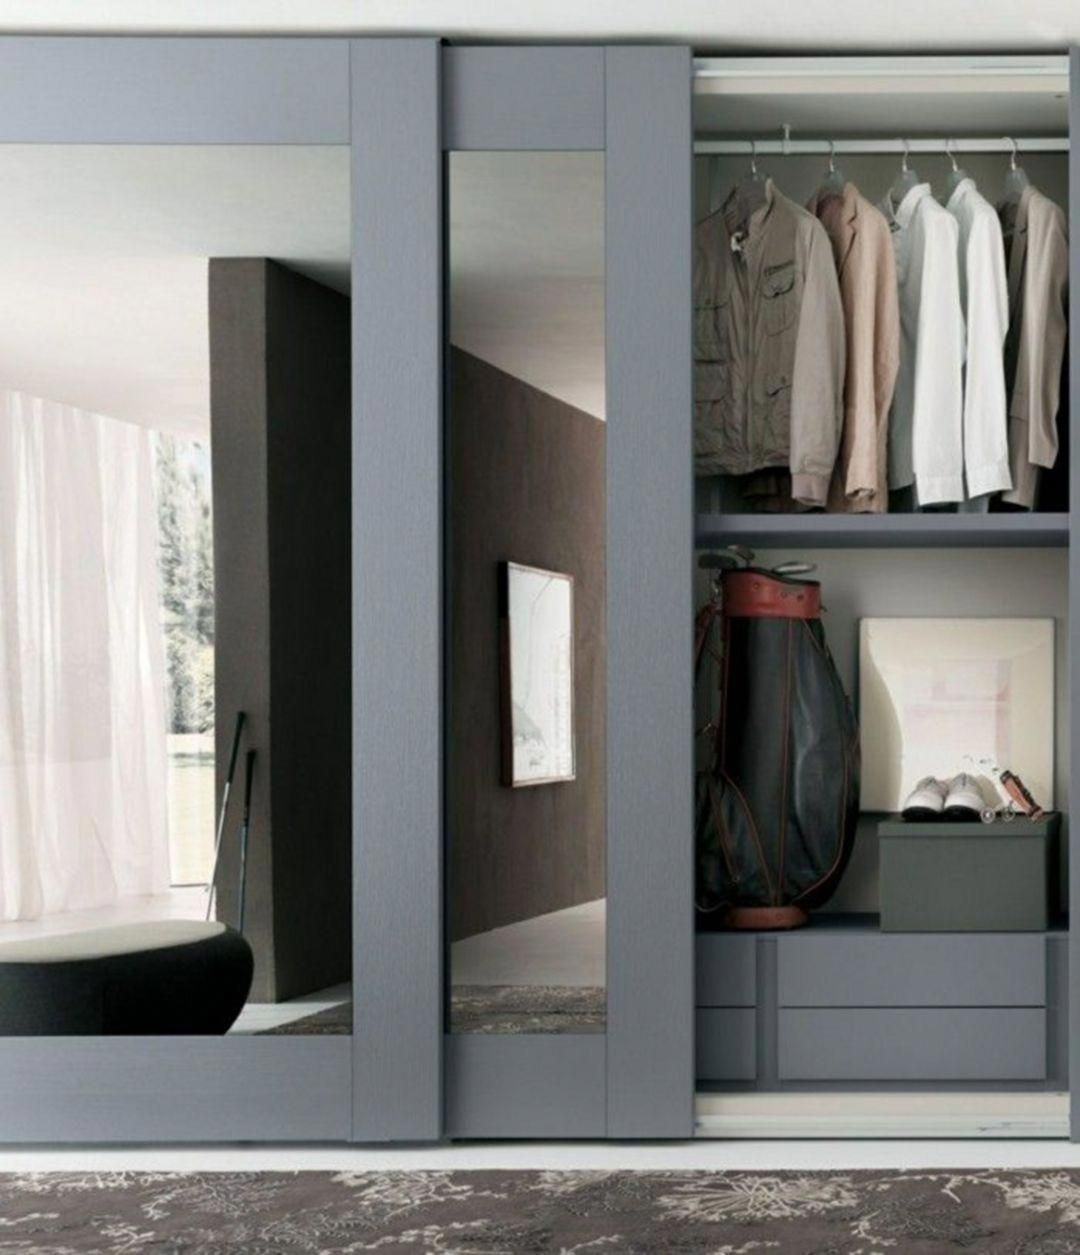 Easy Interior Design Decoratehome Wardrobe Door Designs Sliding Wardrobe Designs Sliding Wardrobe Doors